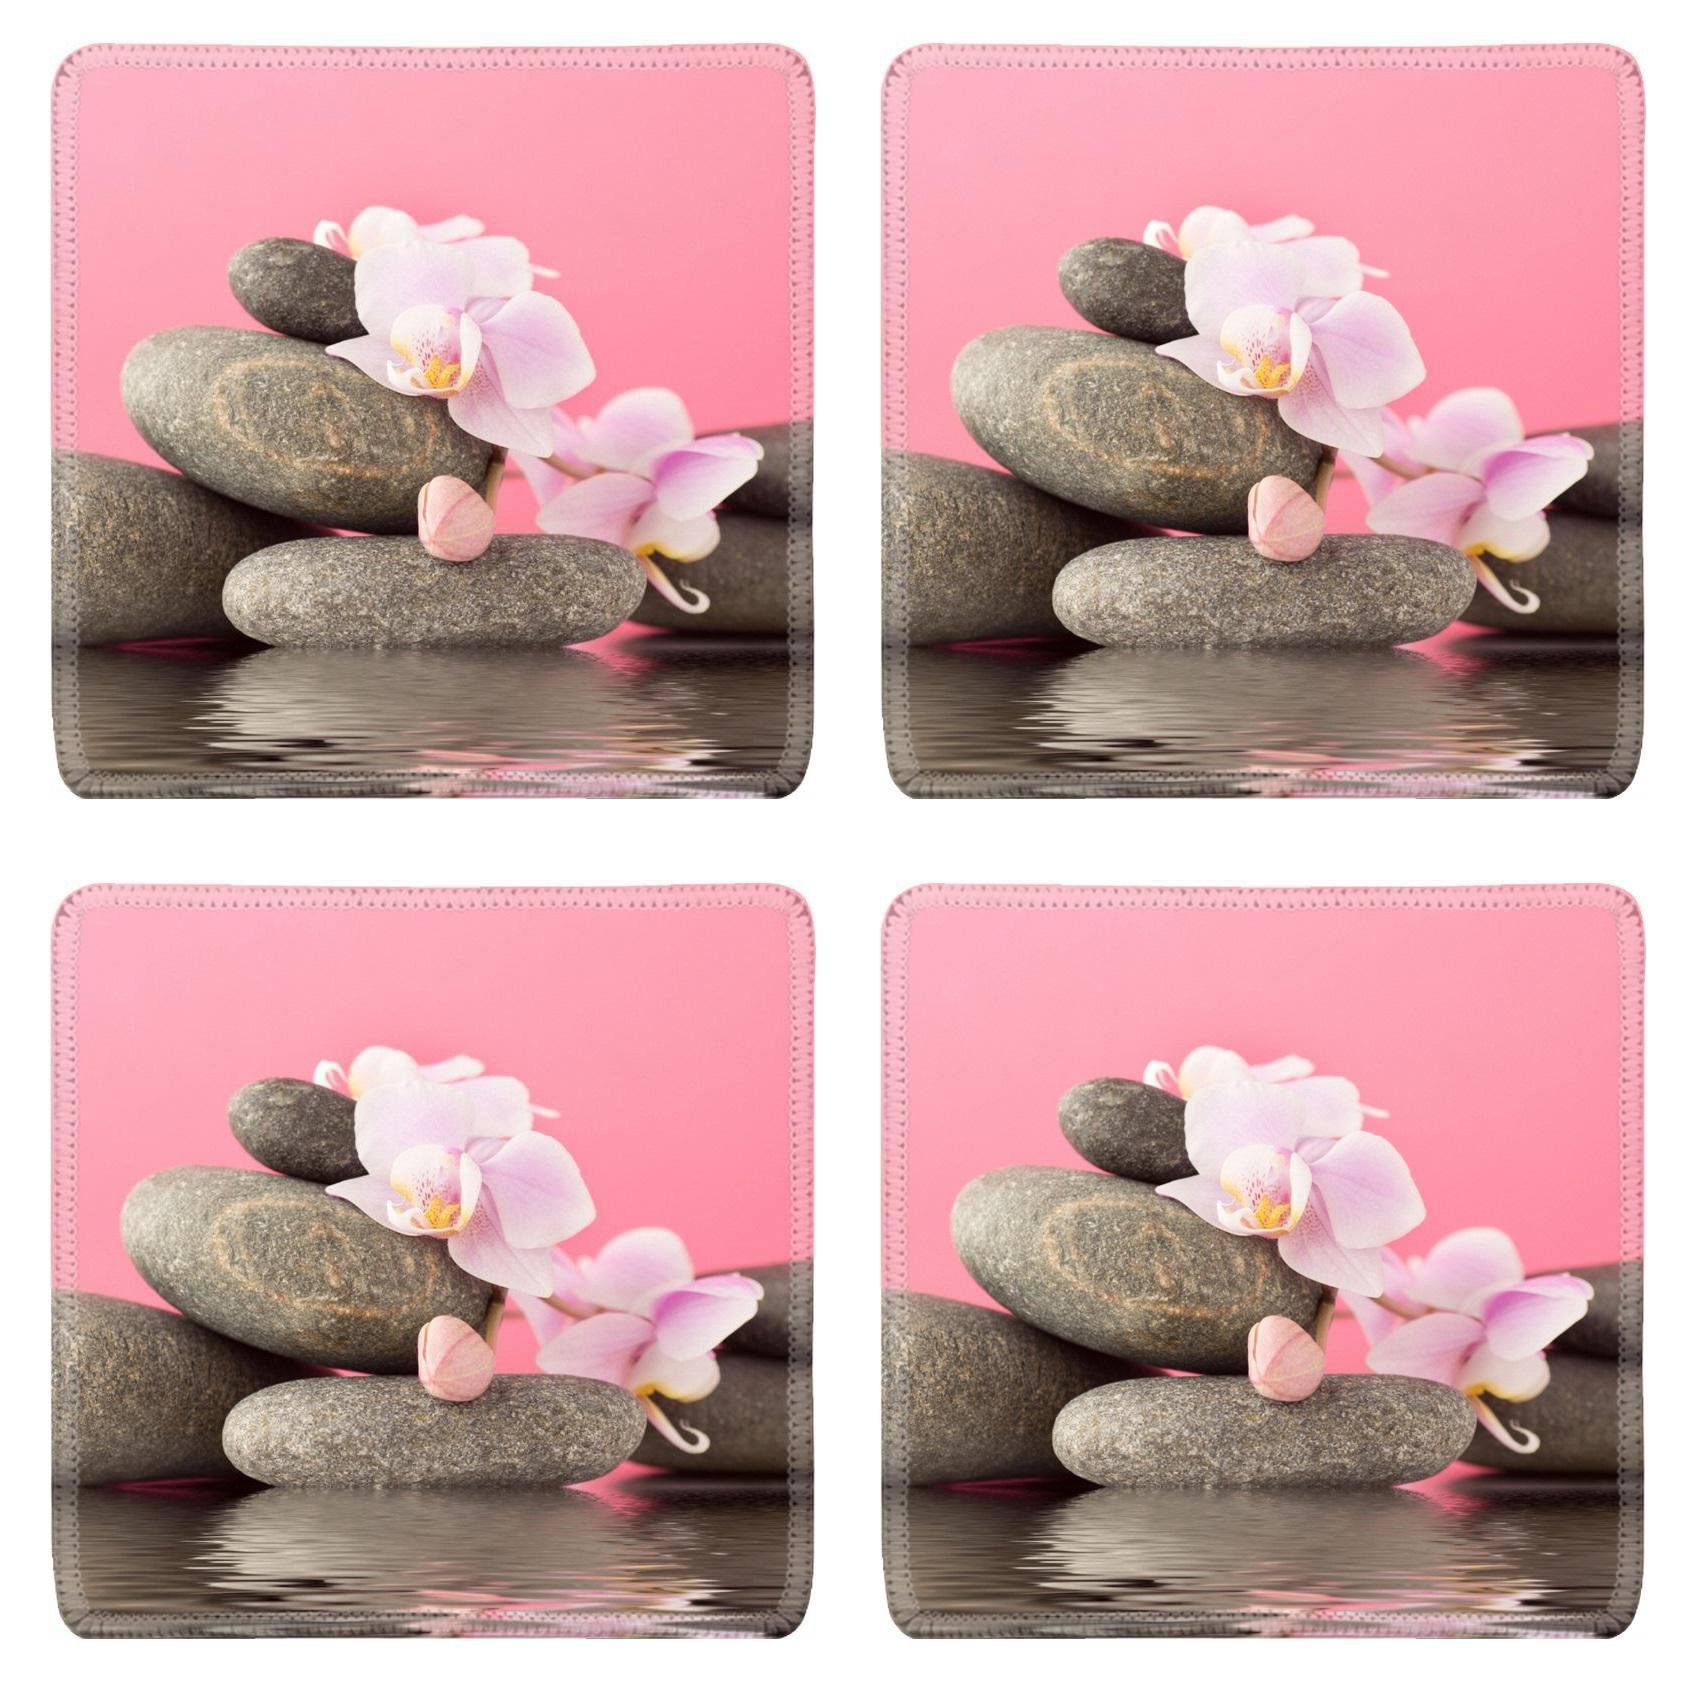 MSD Square Coasters Non-Slip Natural Rubber Desk Coasters design 28544324 Spa stones on pink background with orchids